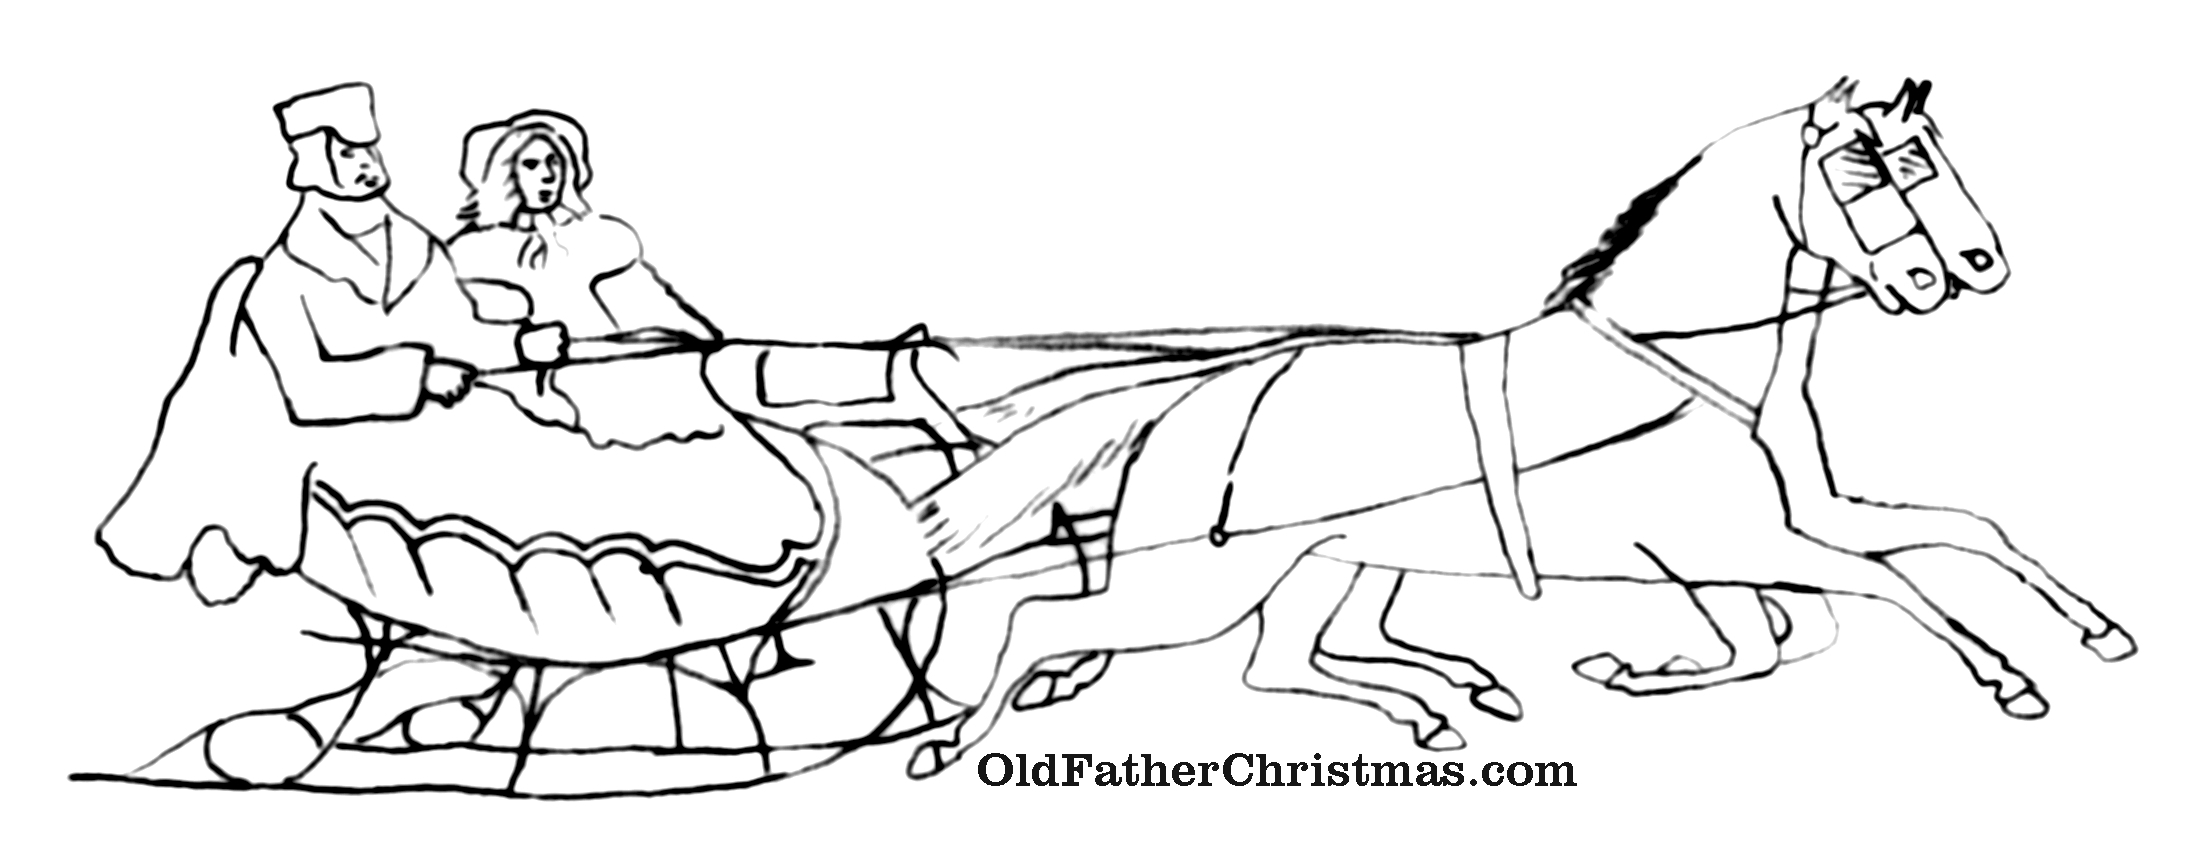 Christmas Coloring Pages Sleigh With How To Draw Horse Page 2 Http Co Uk S